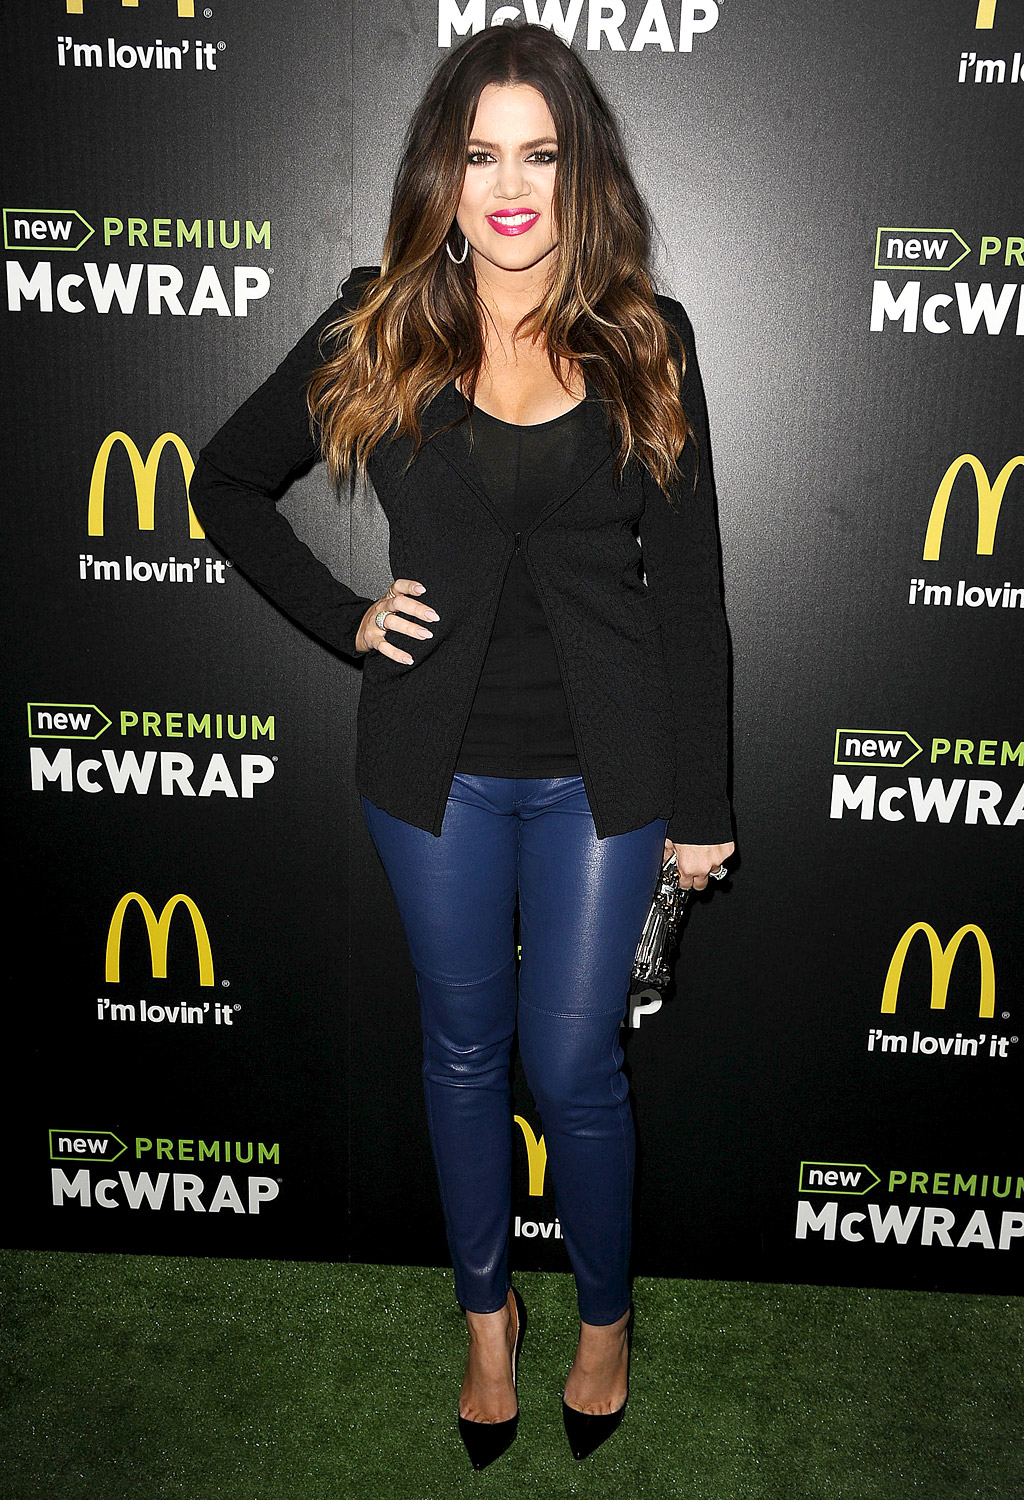 """Showing off her fit frame March 28, 2013 in a pair of blue leather jeans and a black blazer, Khloé told Us about her intense exercise sessions that she completes with a personal trainer. """"I love to box!"""" she said."""